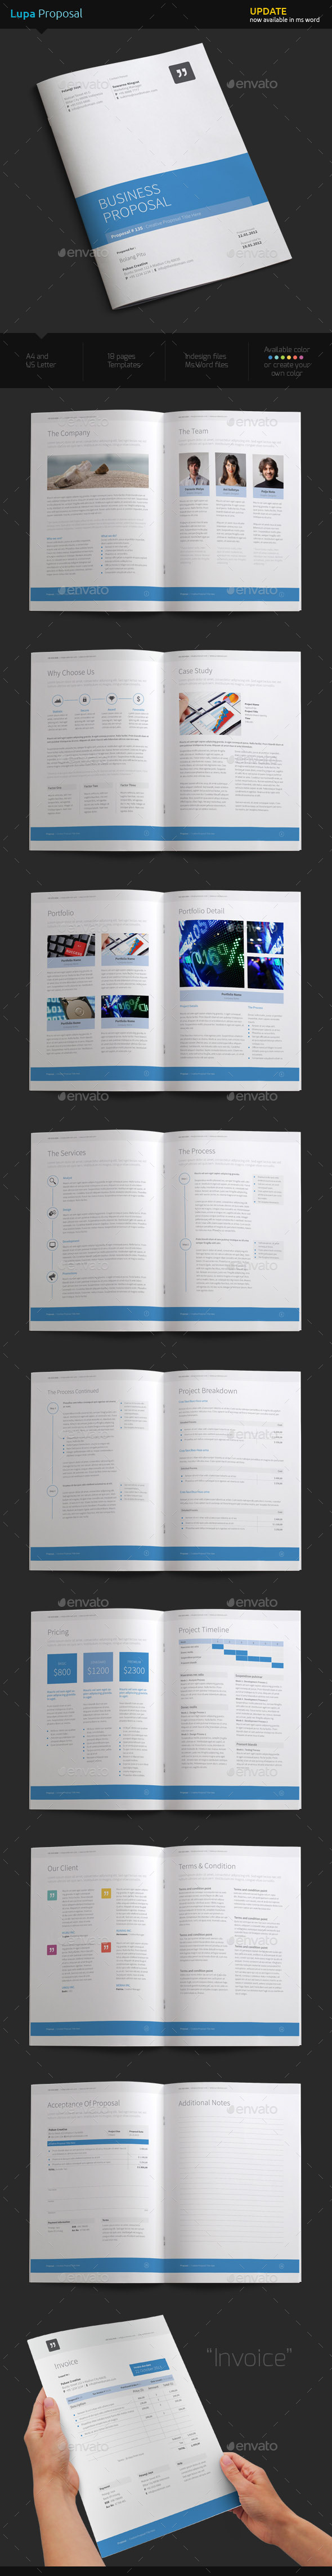 Lupa Proposal - Proposals & Invoices Stationery